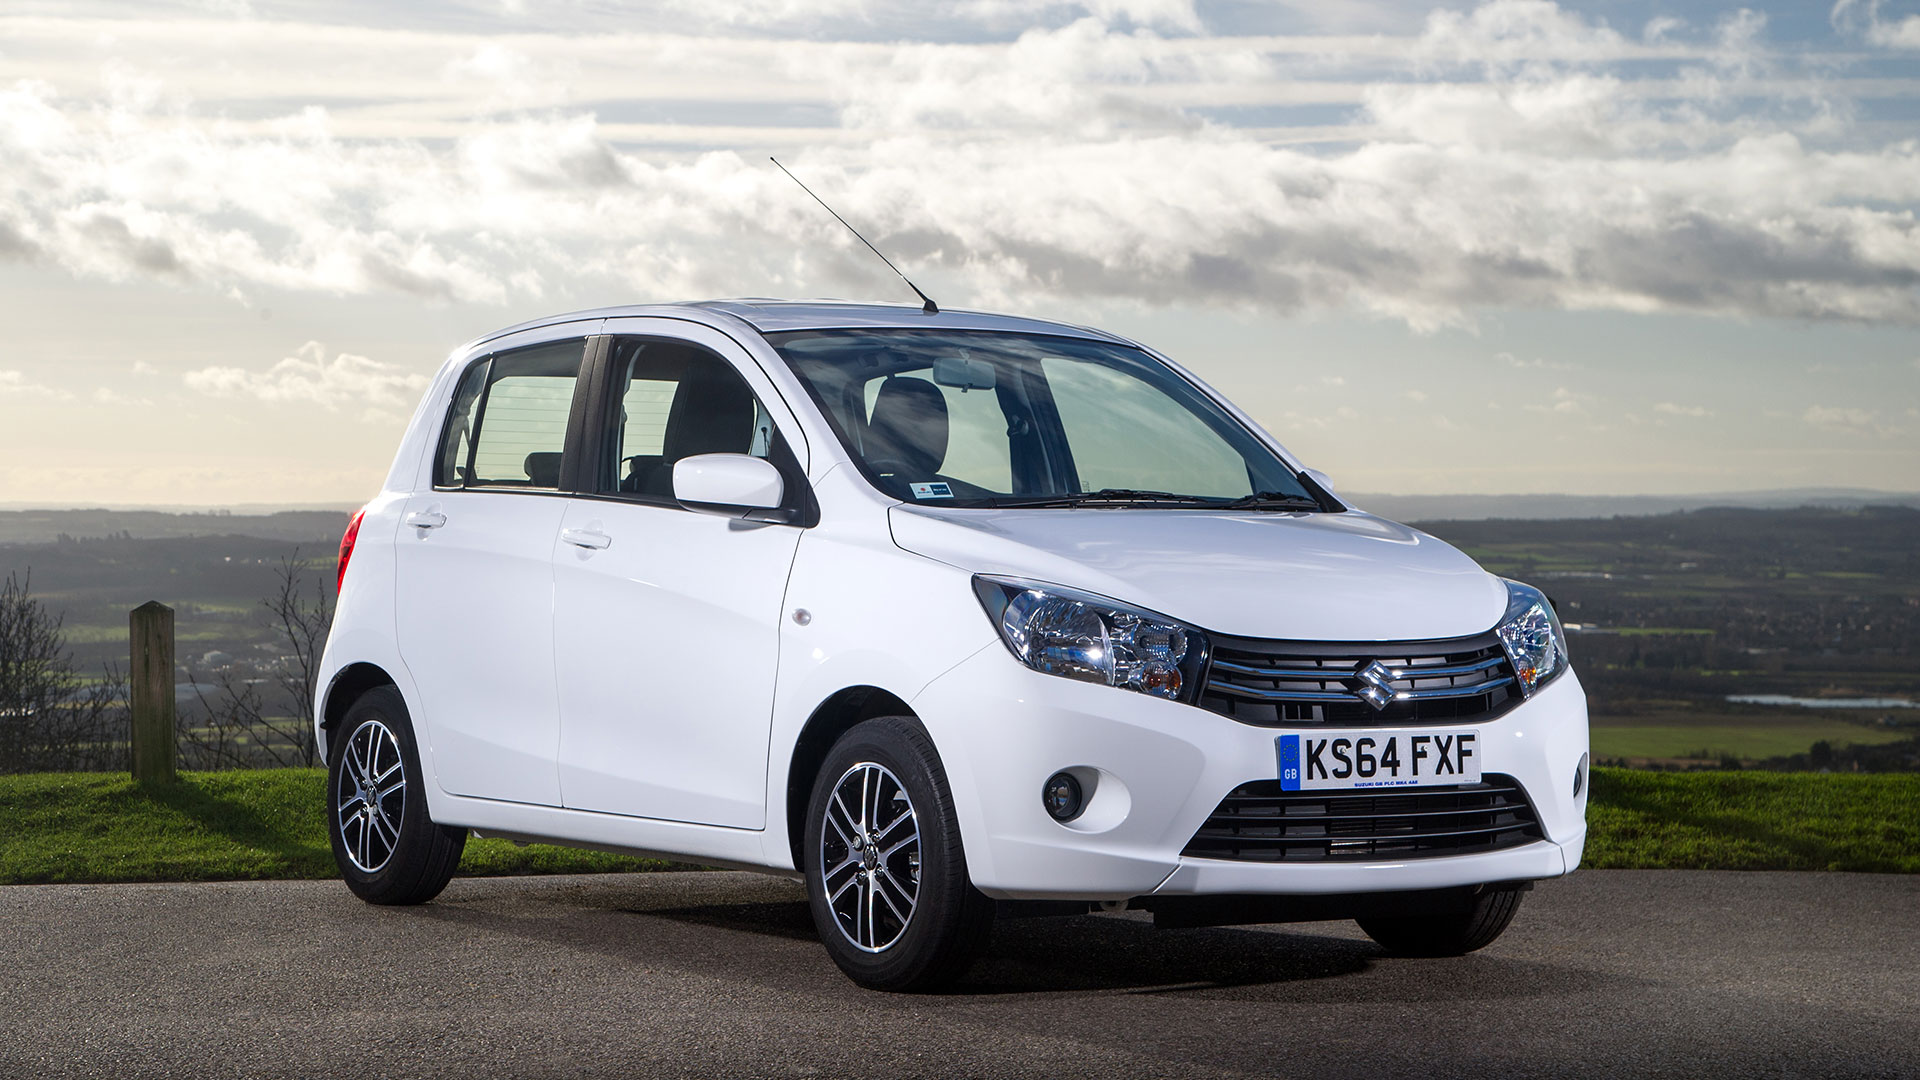 used suzuki celerio cars for sale on auto trader uk. Black Bedroom Furniture Sets. Home Design Ideas